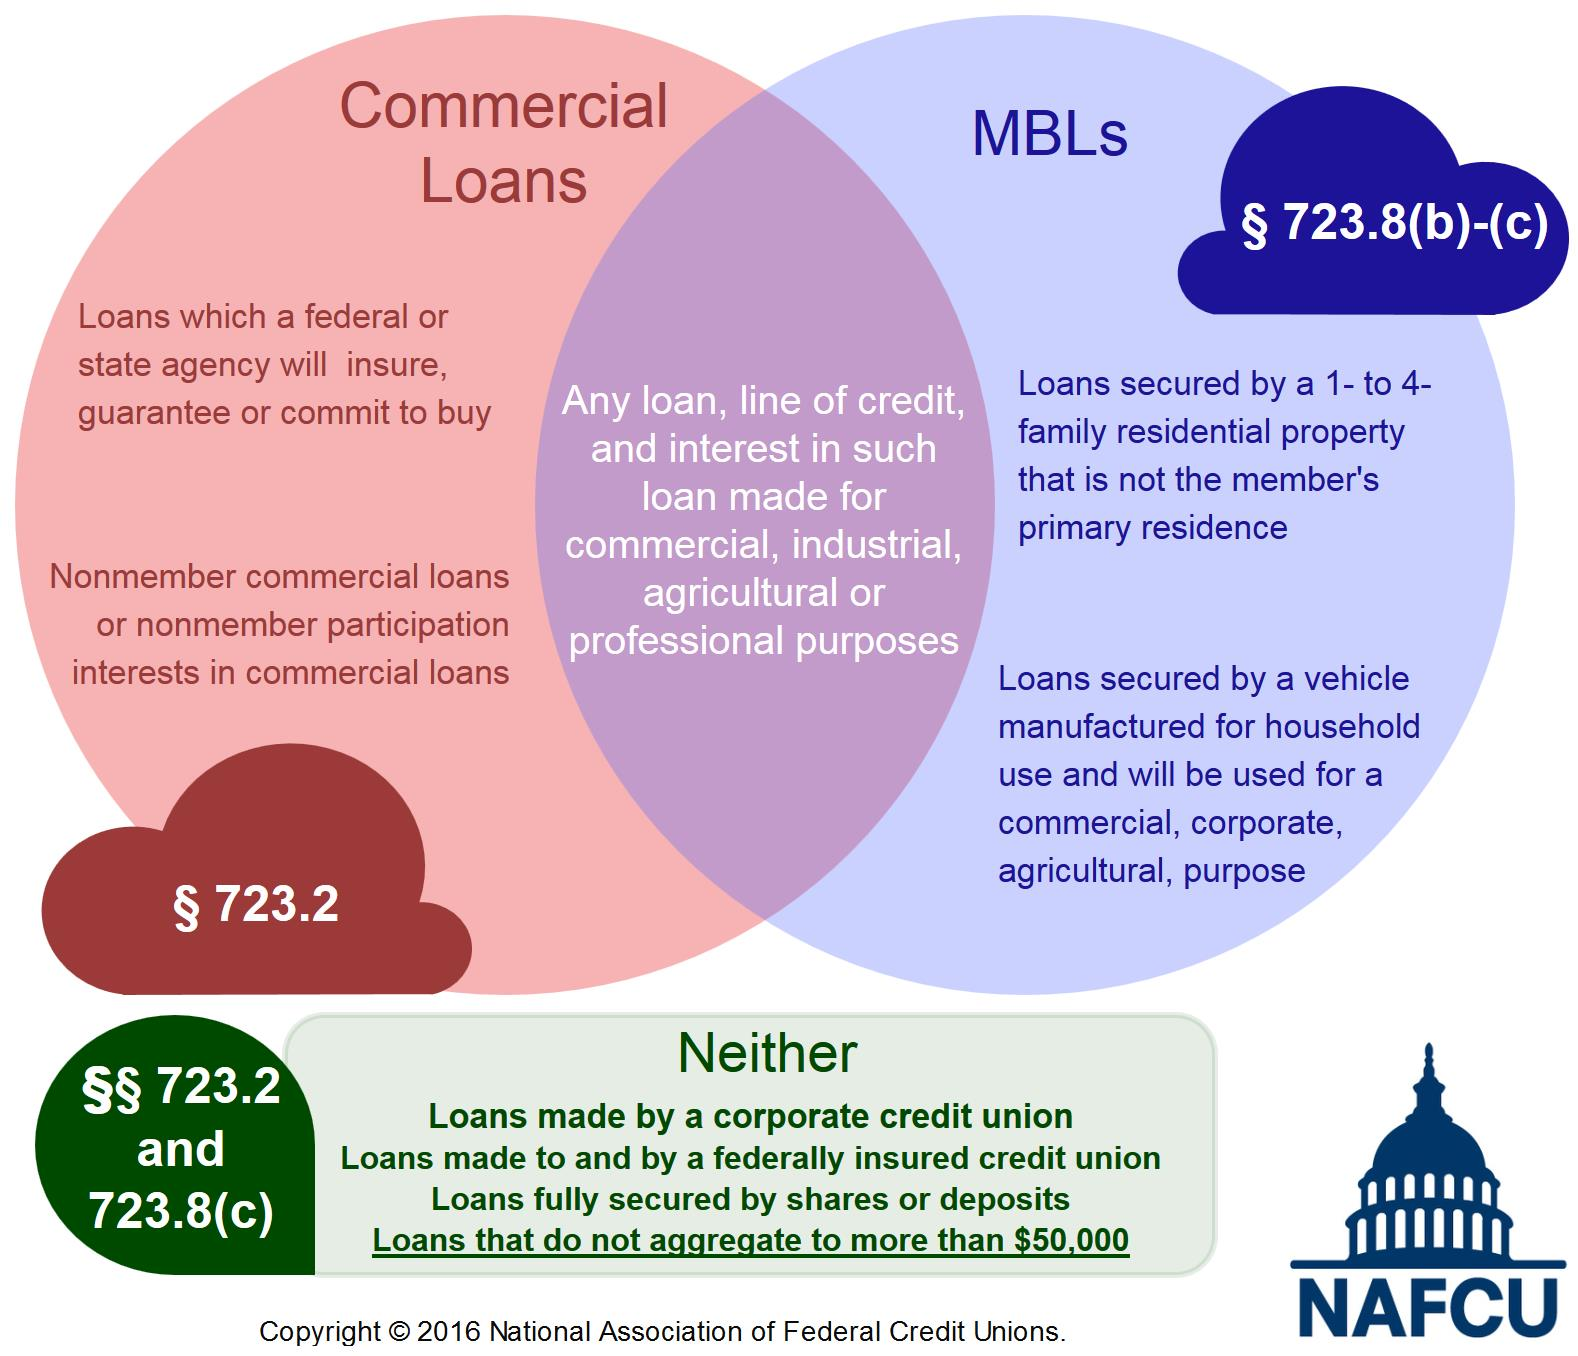 Nafcu compliance blog ncuas new mbl rule commercial loans mbl ven diagram pooptronica